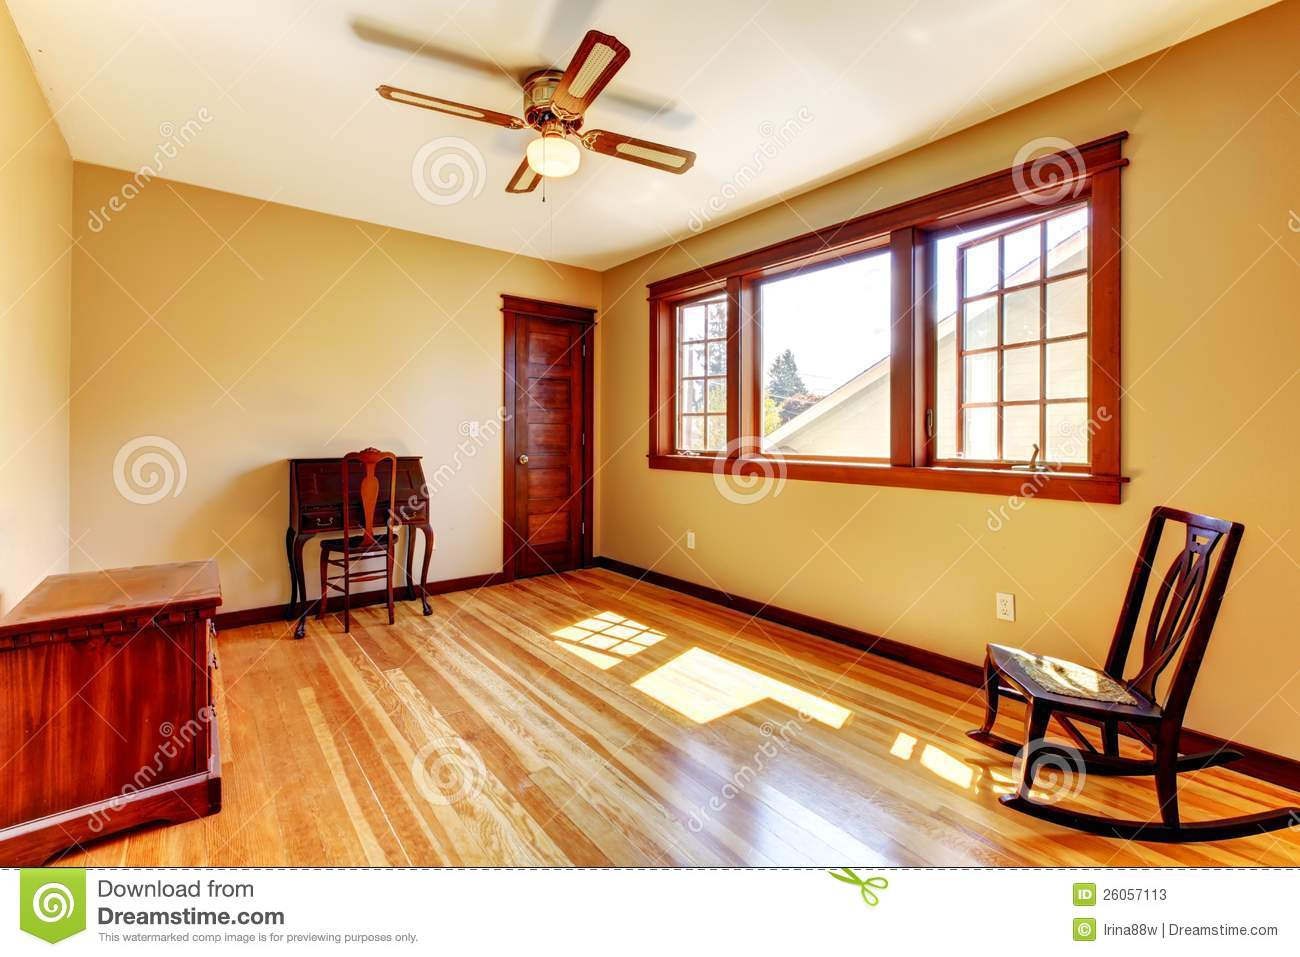 Yellow Walls Classy Empty Room With Yellow Walls And Hardwood Floorstock Photos Inspiration